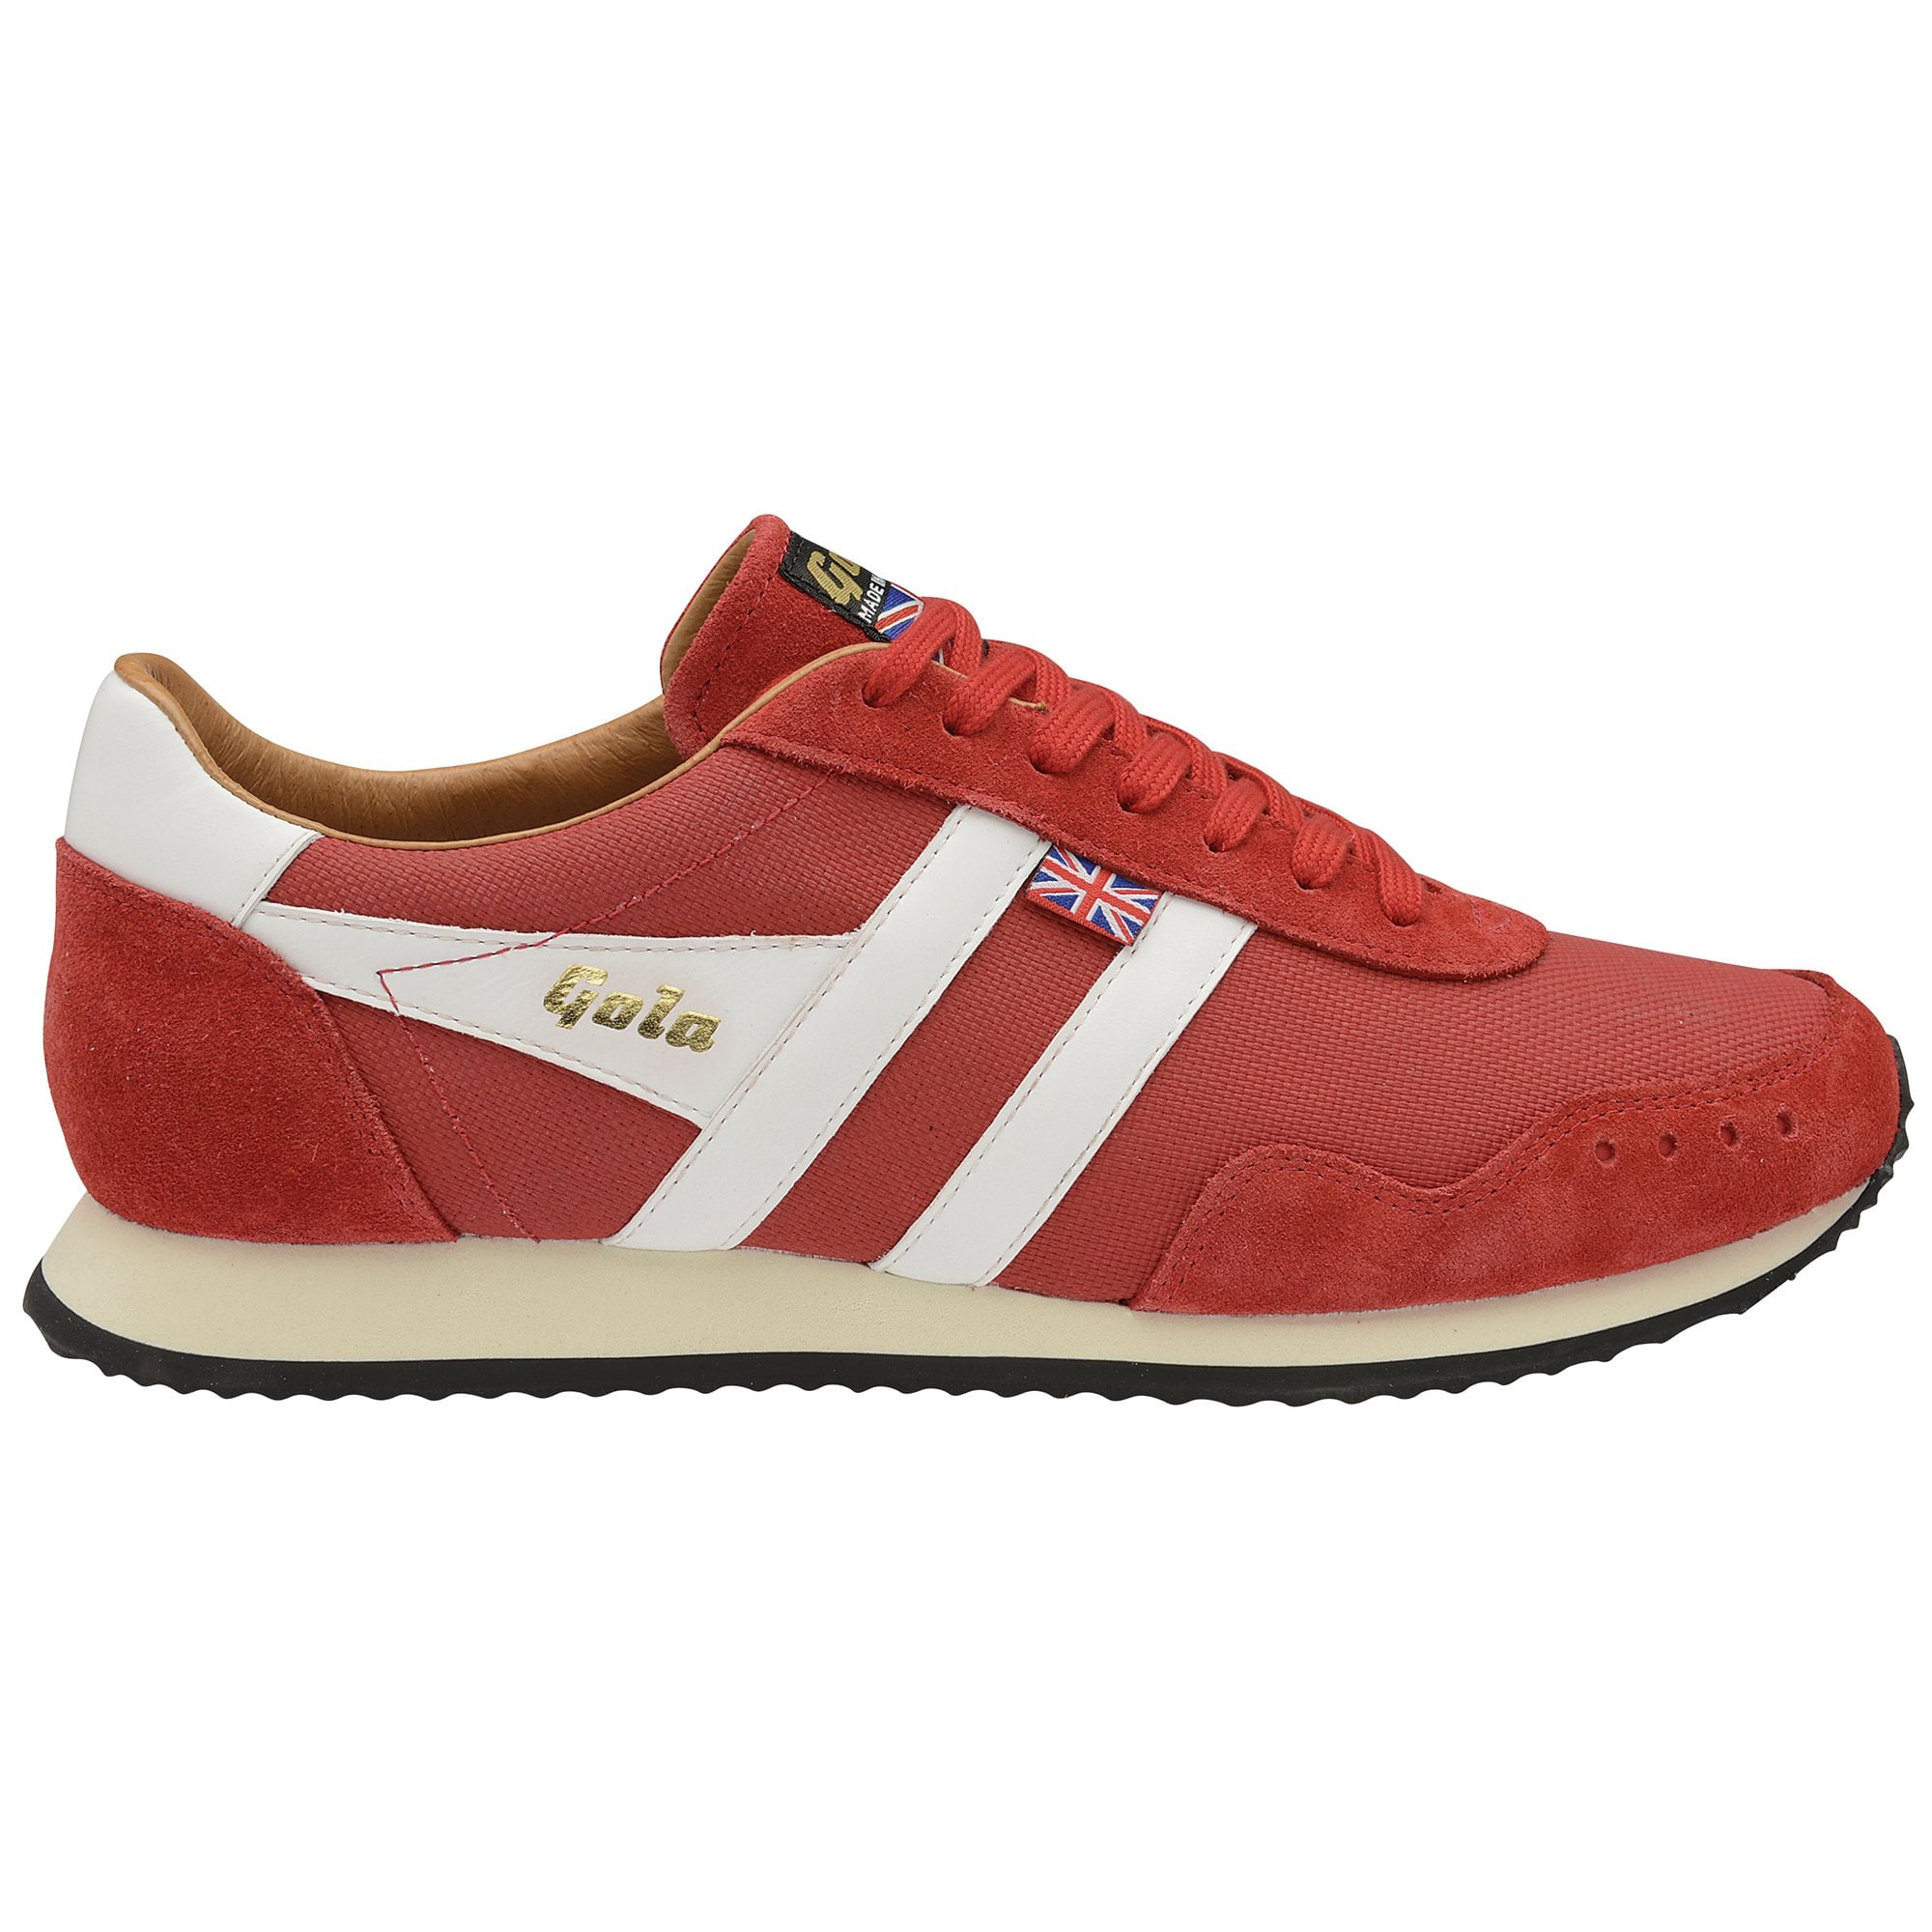 Buy Gola Track Mesh 317 trainers in red